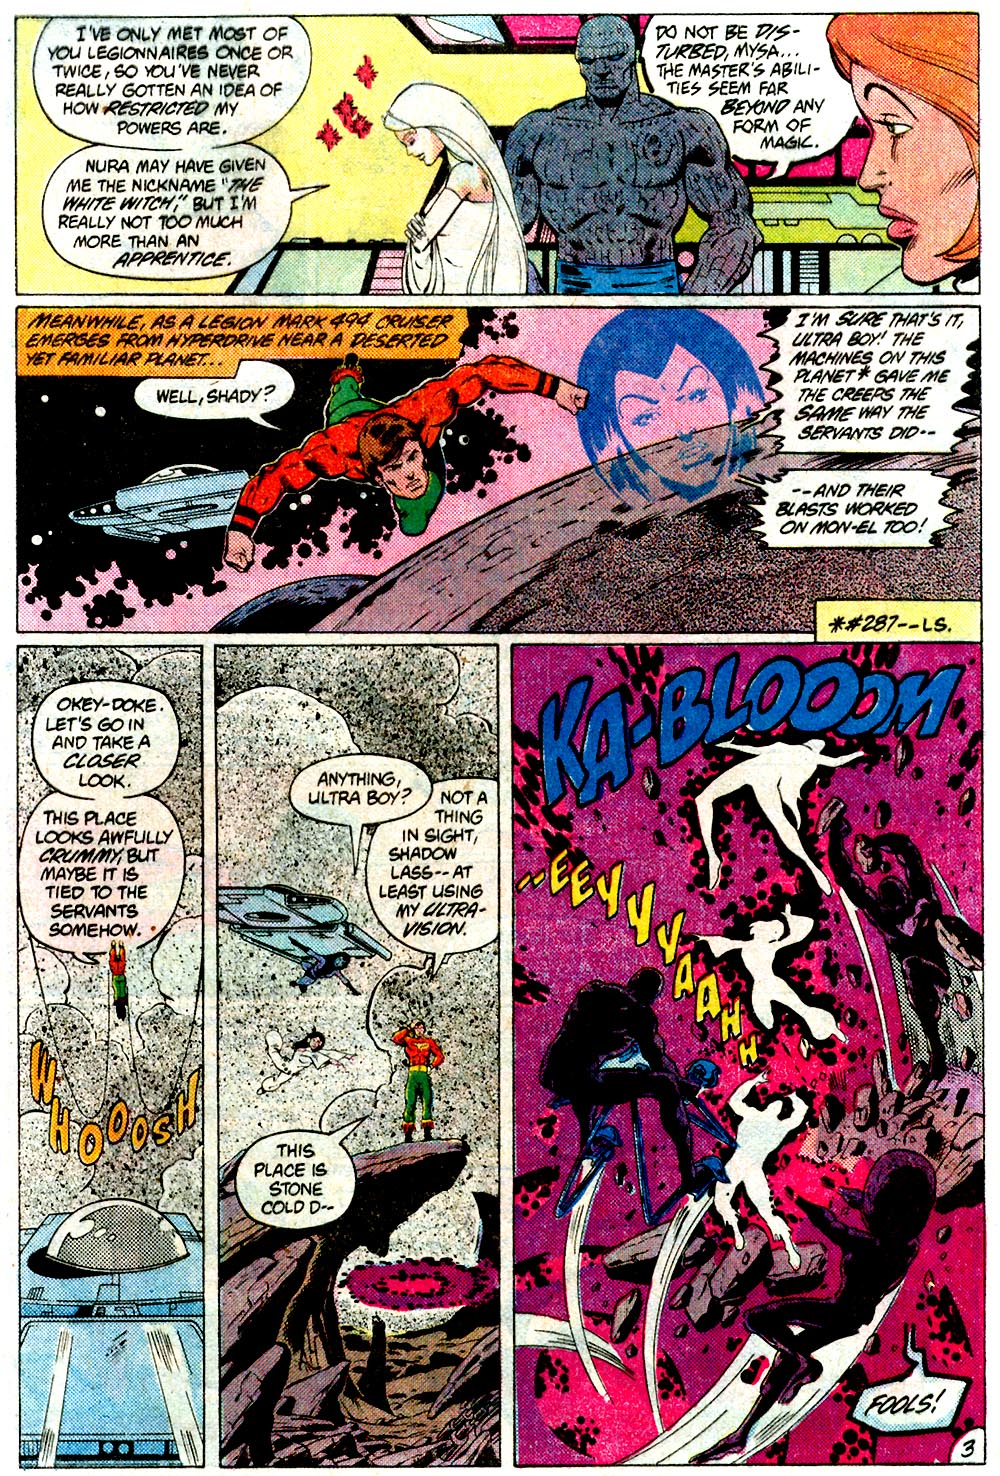 Legion of Super-Heroes (1980) 293 Page 3